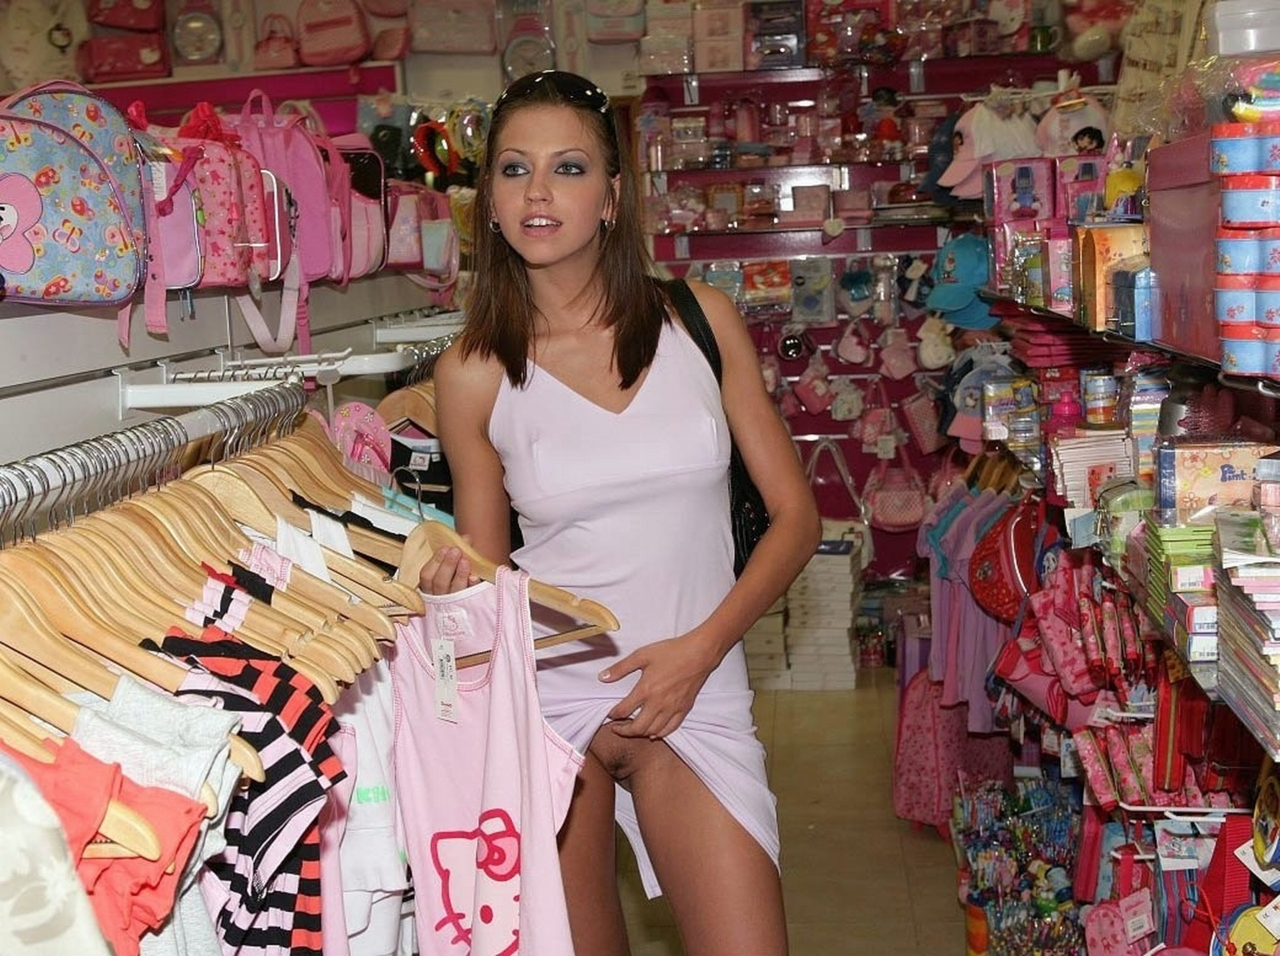 Nude public in stores women shopping